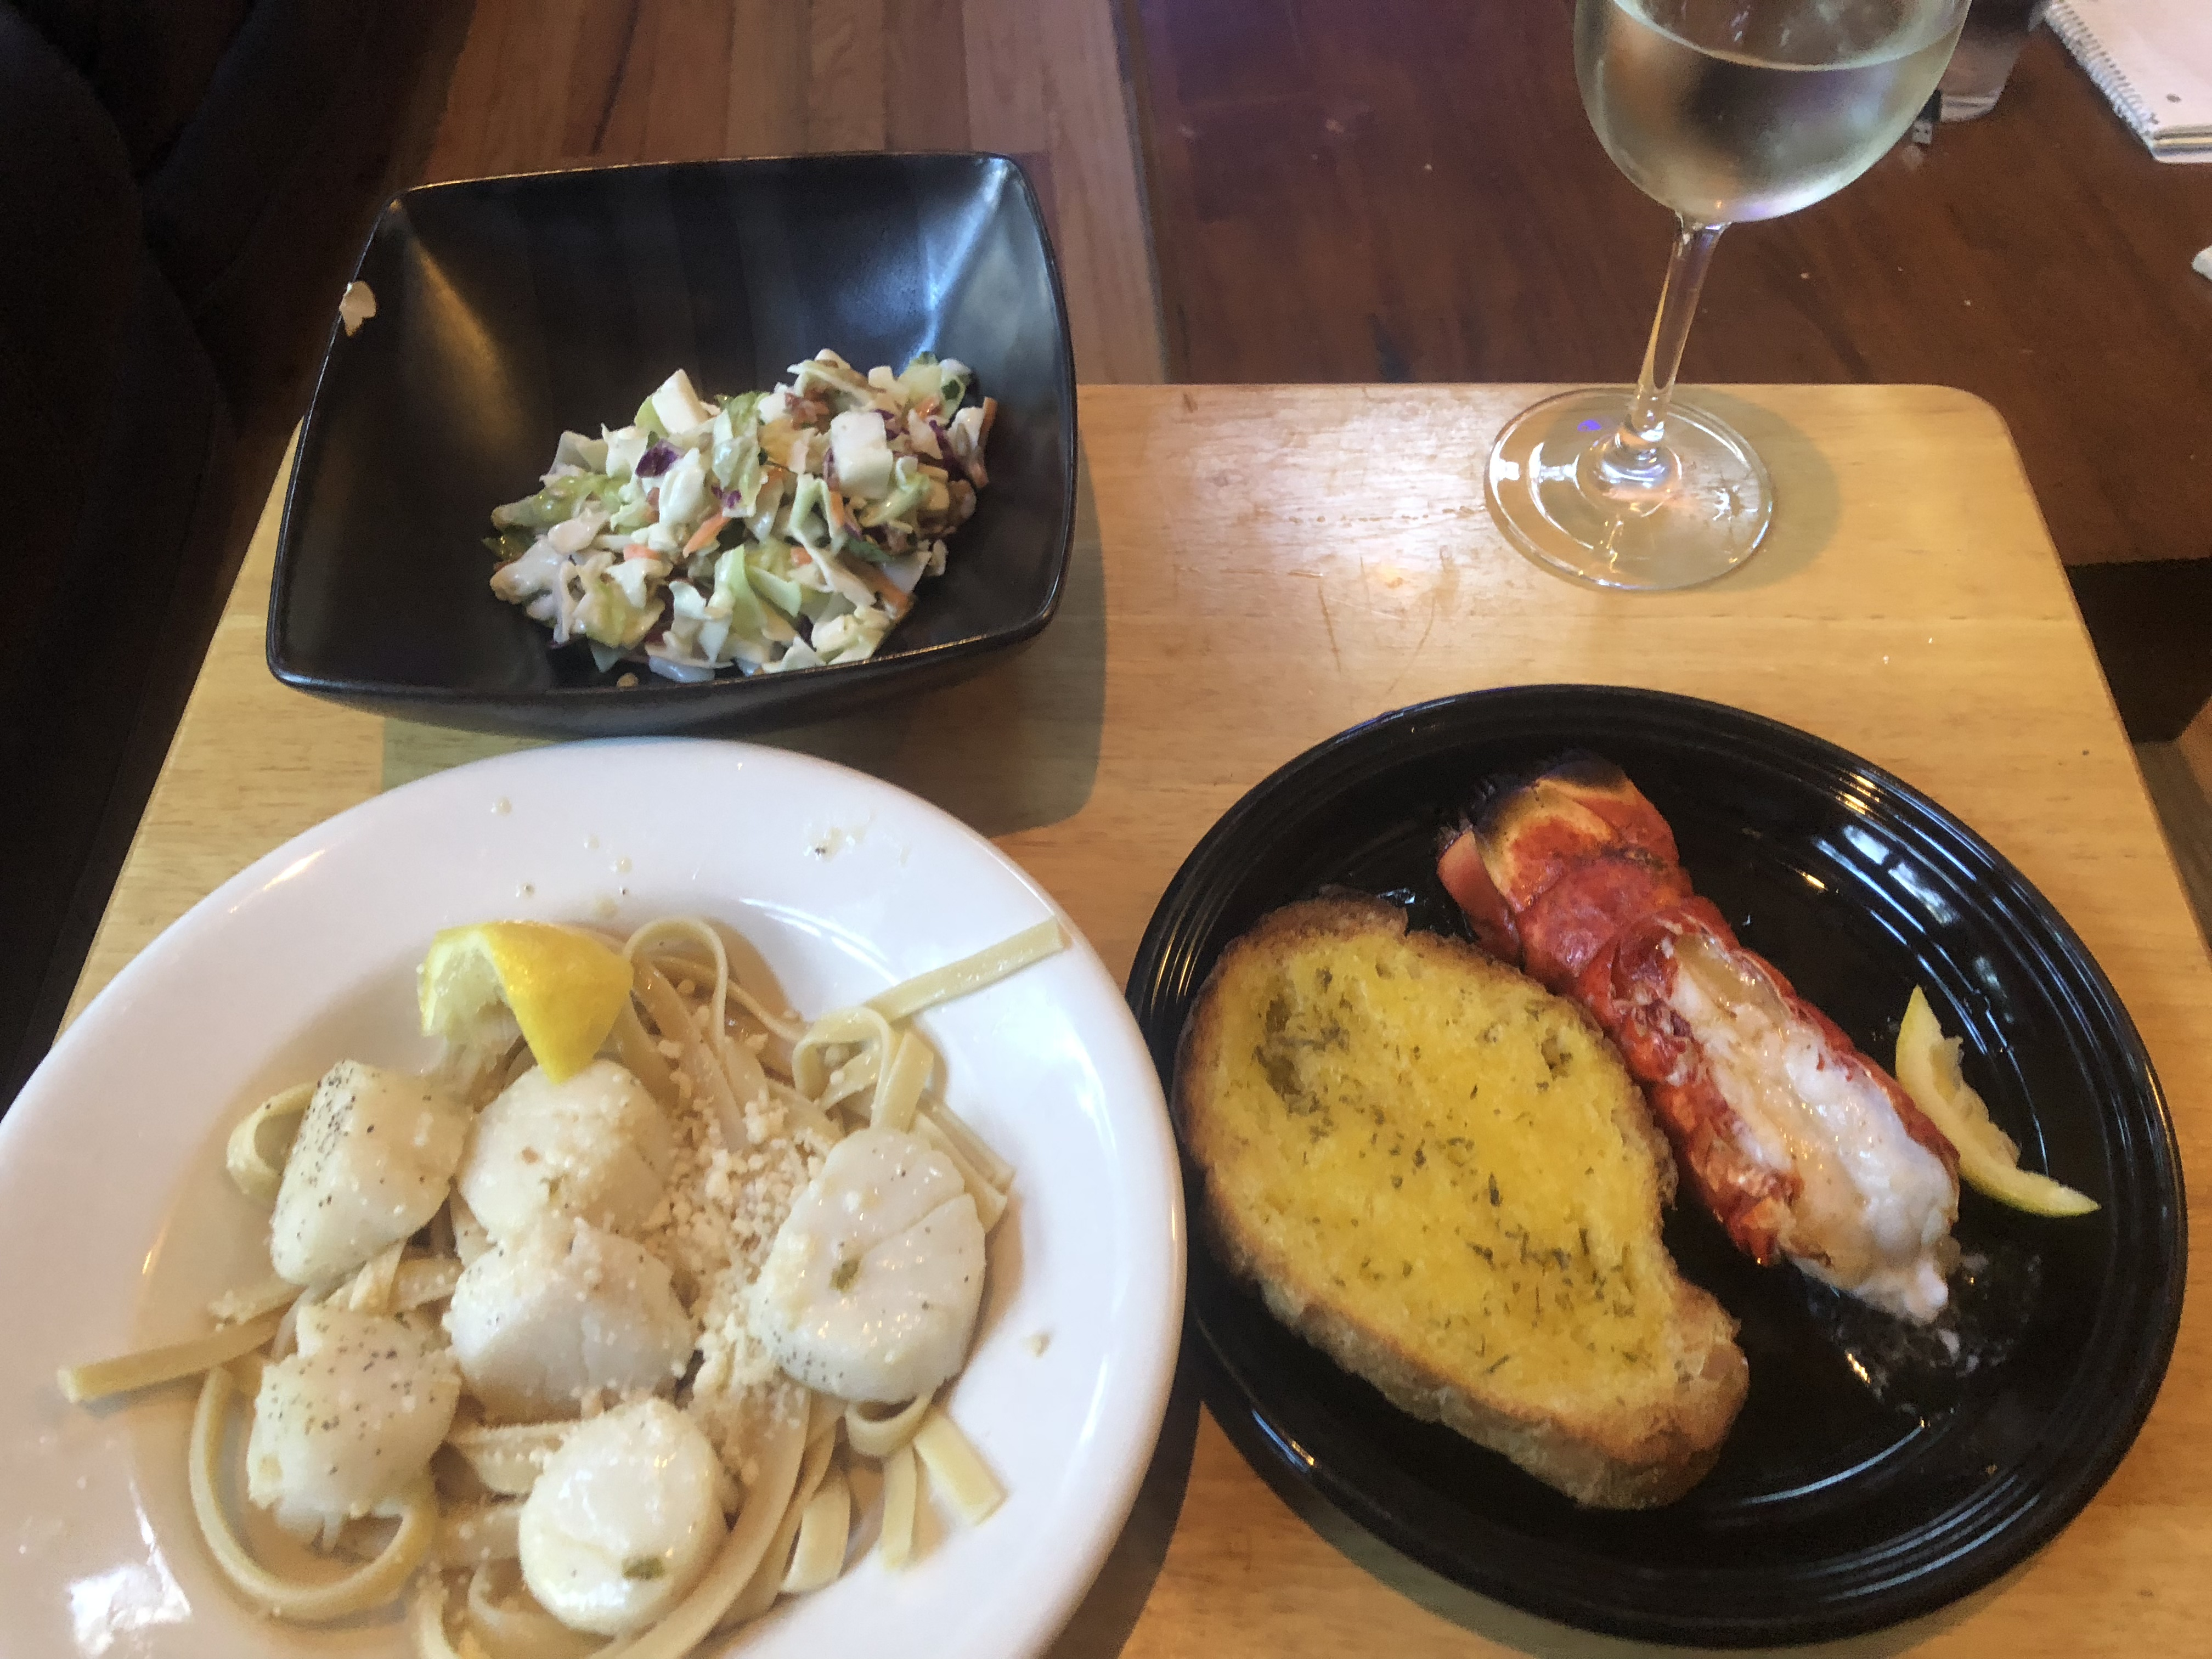 Scallops with White Wine Sauce II Michelle Lola Montez Sabate